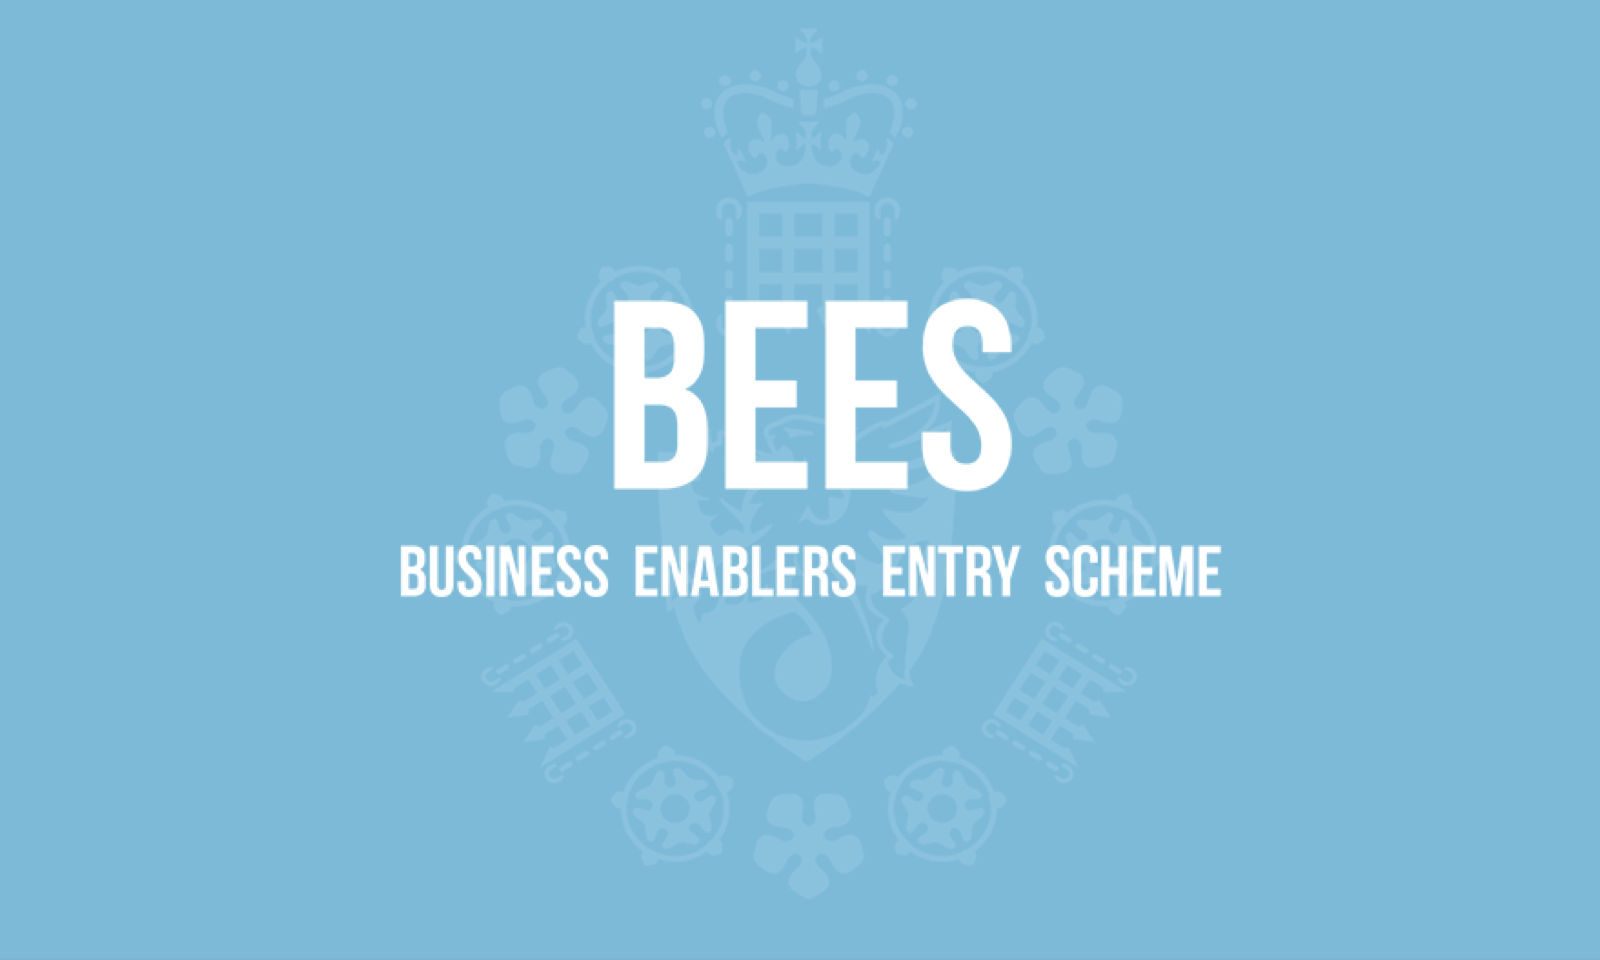 (BEES) Business Enabler Entry Scheme